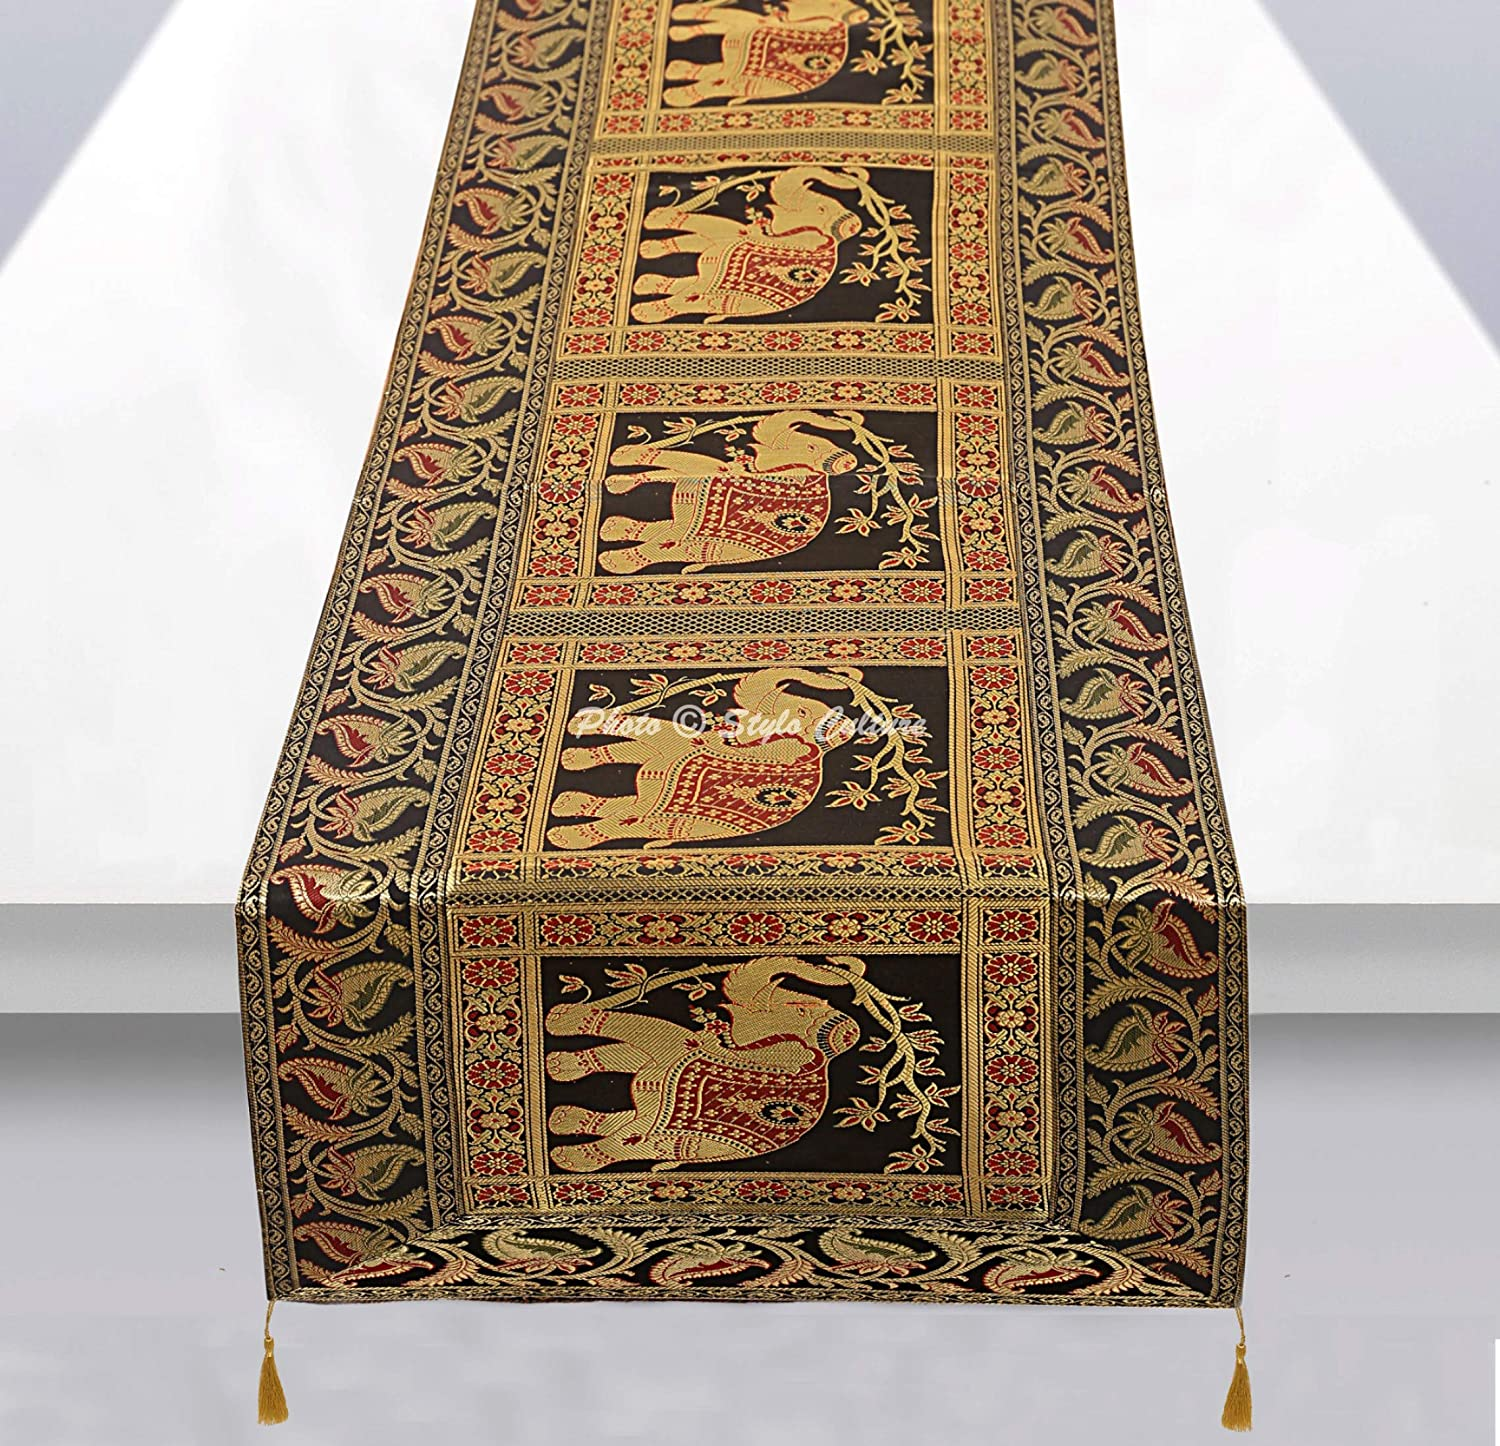 152 x 40 cm 60x16 Inches Stylo Culture Traditional Centre Table Runner For Dining Table Red Brocade Jacquard /& Satin Bohemian Elephant Peacock Floral Extra Long Indian Table Decor